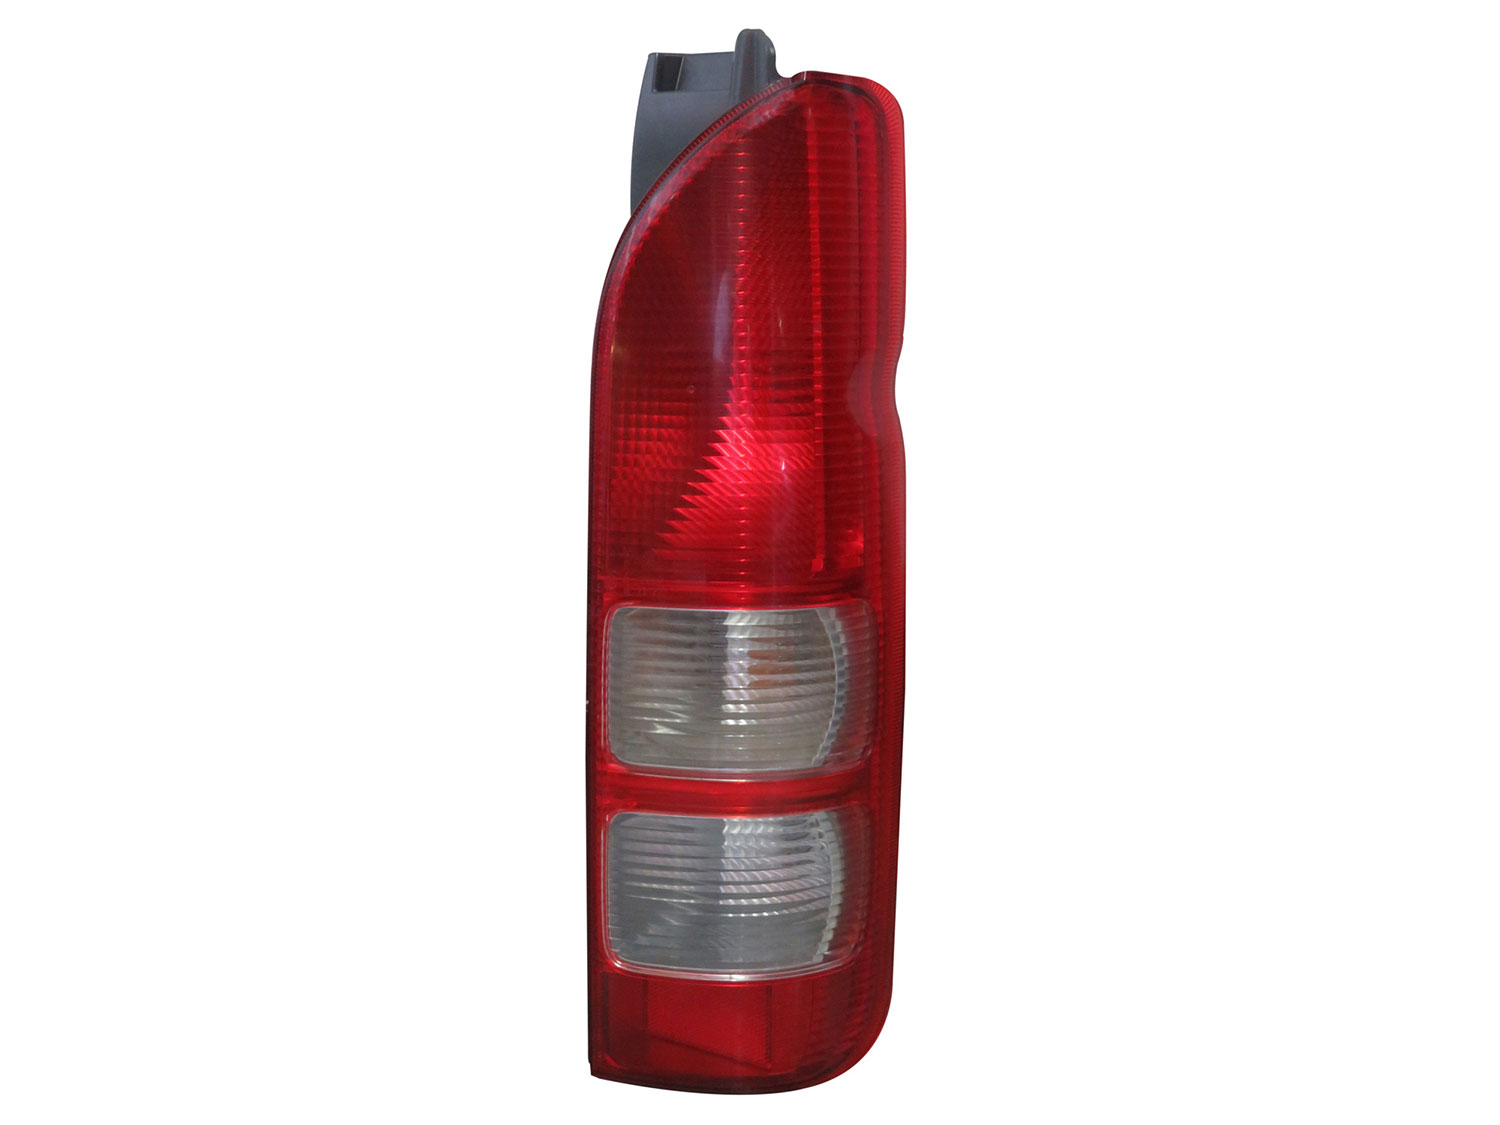 Suppliers Of Quality Used Toyota Quantum Tail Lights | Taxi Auto Parts